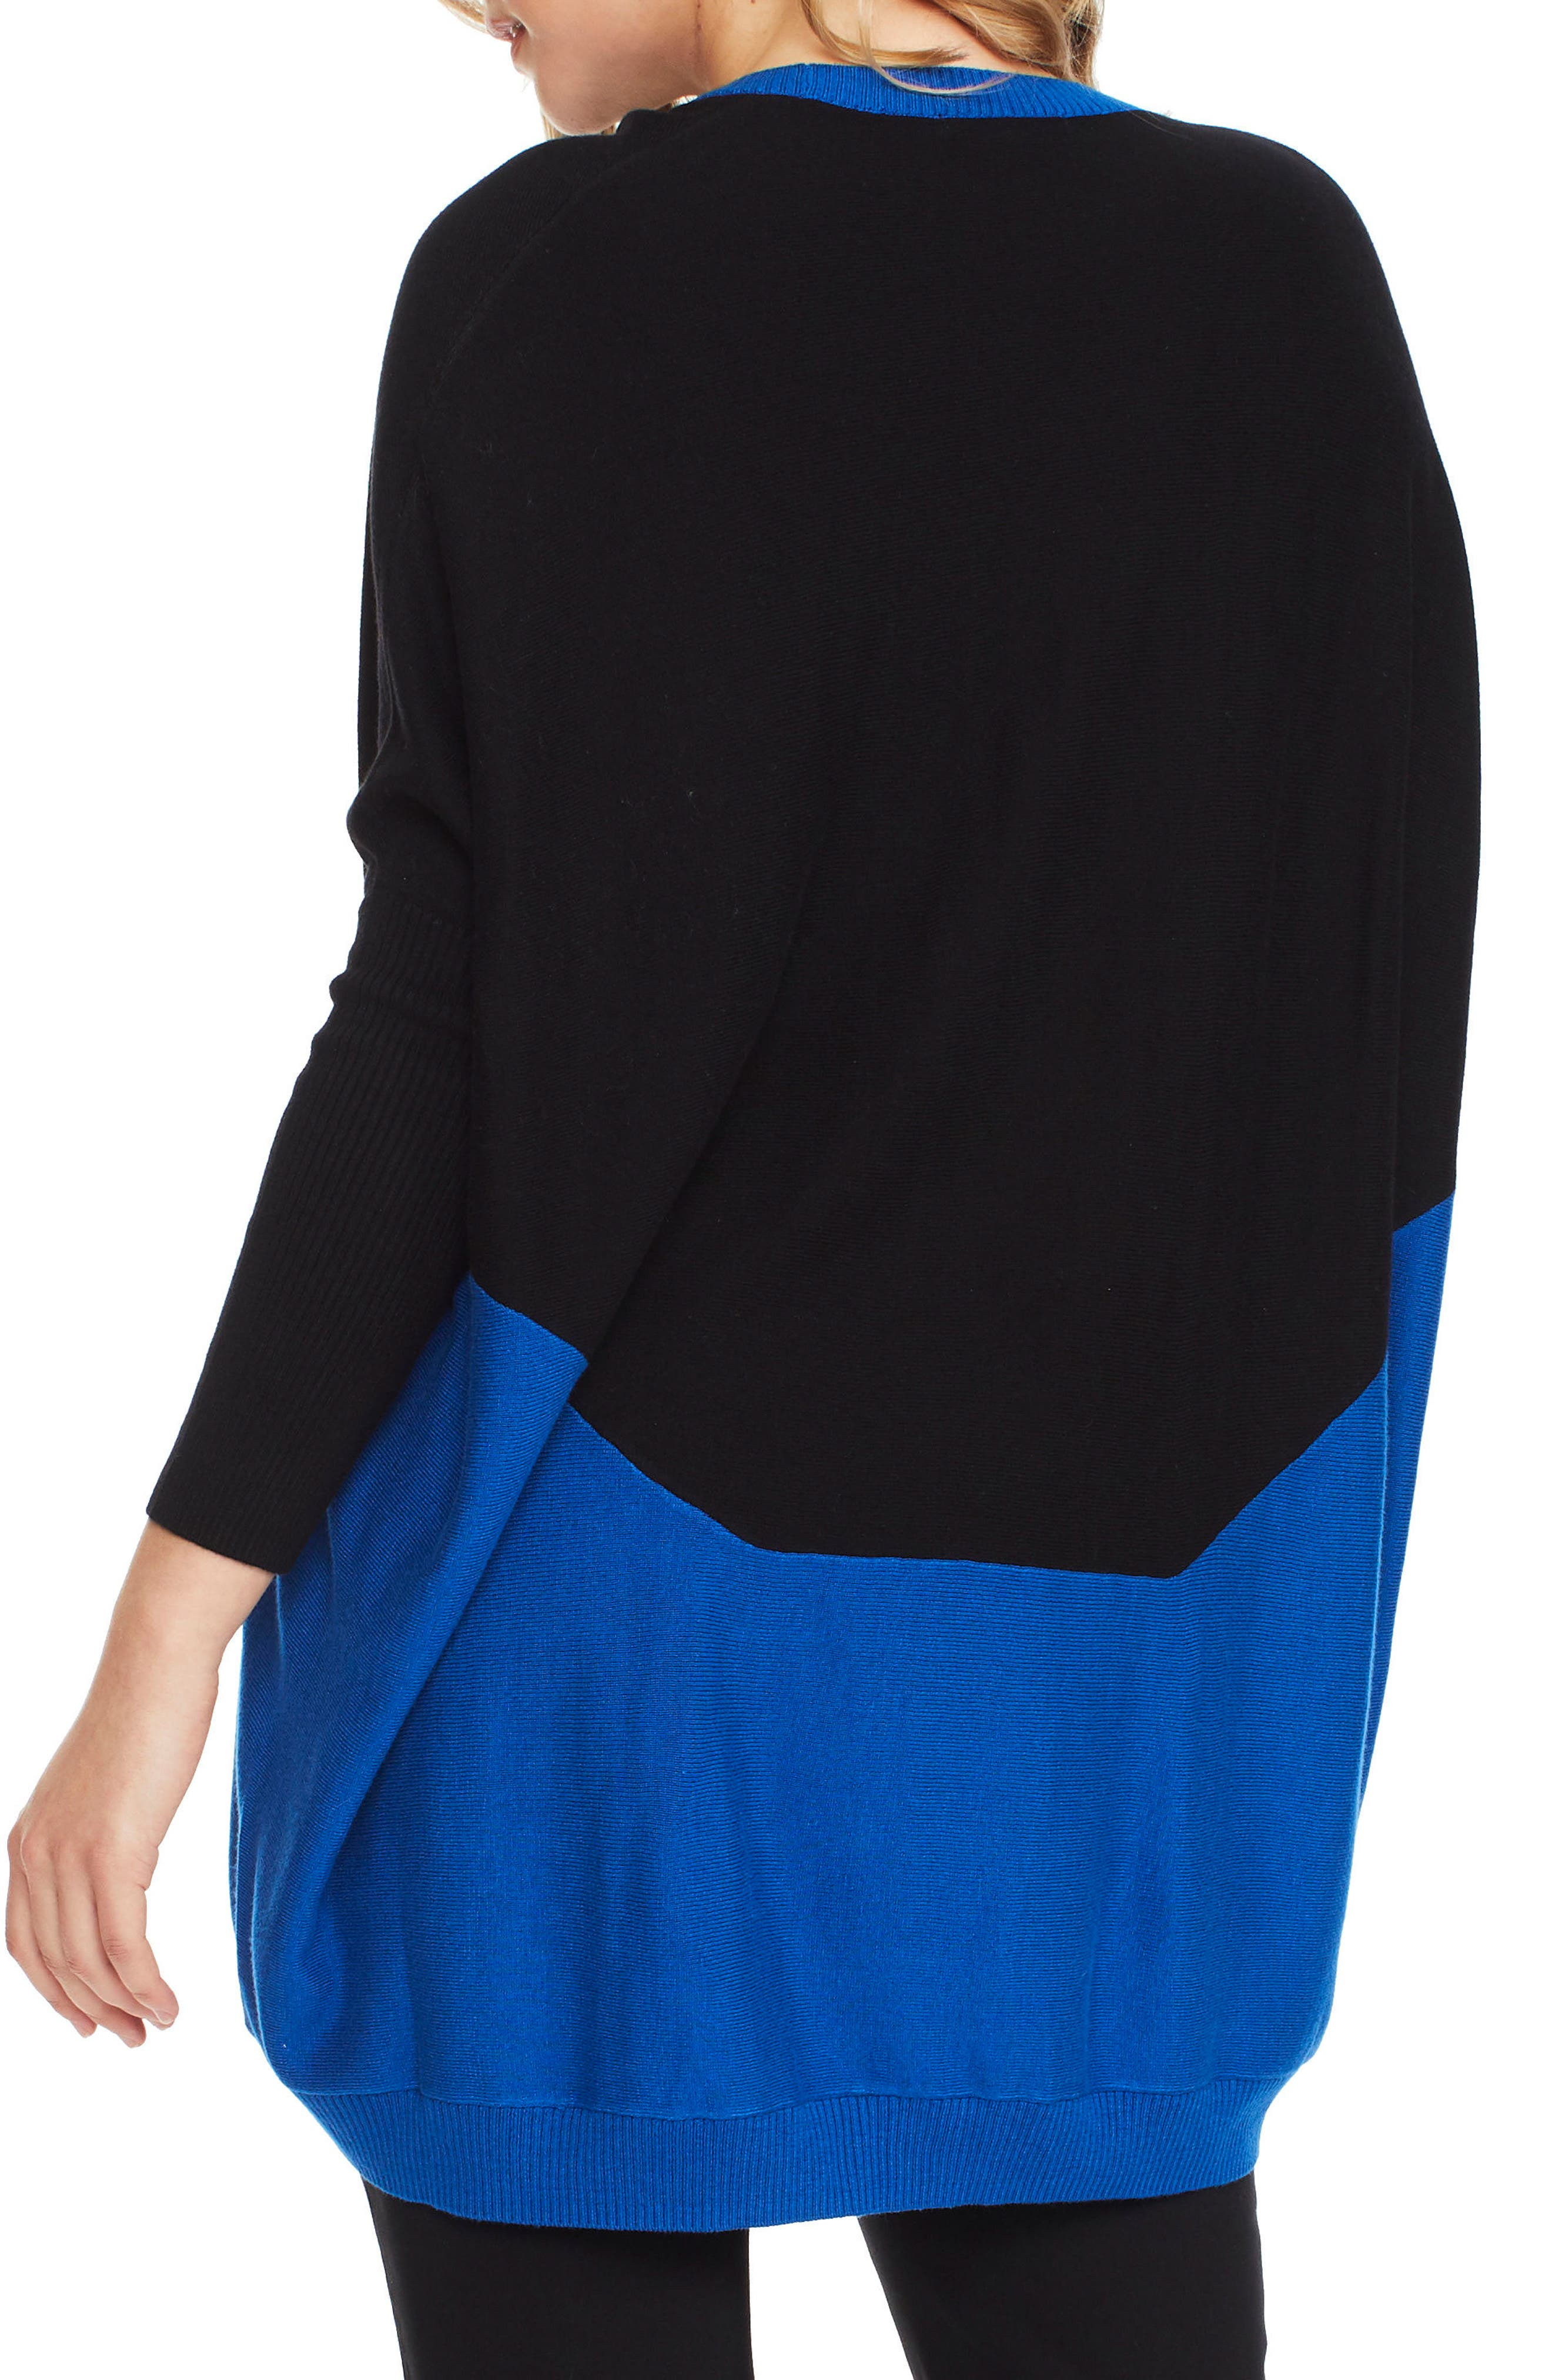 Hazel Colorblock Maternity Sweater,                             Alternate thumbnail 2, color,                             INDIGO / BLACK